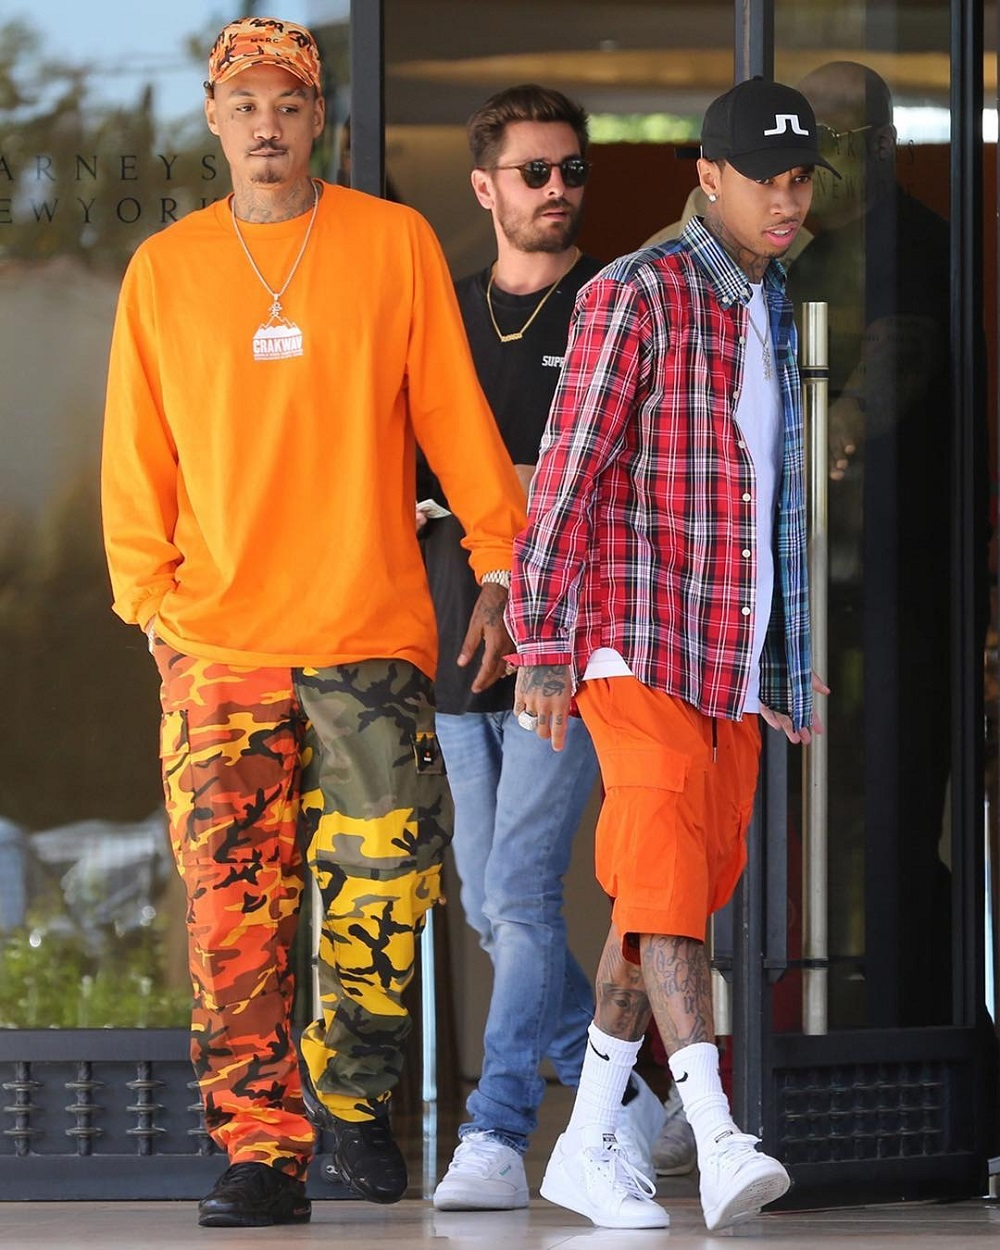 SPOTTED: Tyga in Palace Shirt, J Lindeberg Hat and Raf Simons x Adidas Sneakers